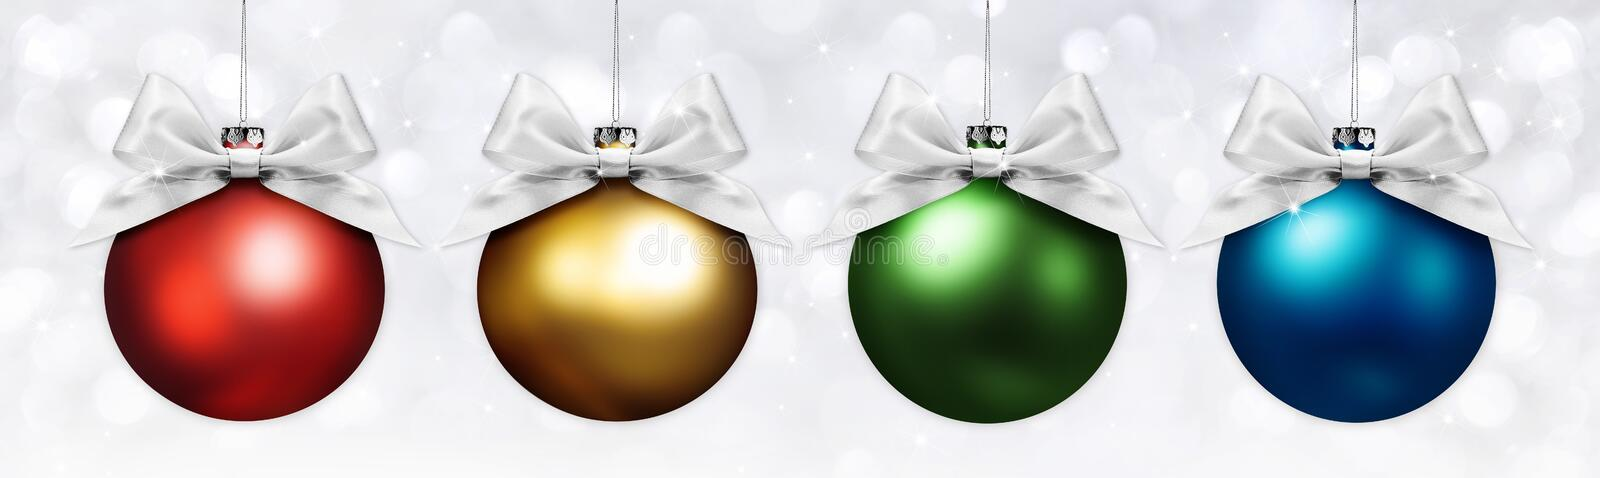 Christmas balls with silver ribbon bow on blurred lights royalty free stock images